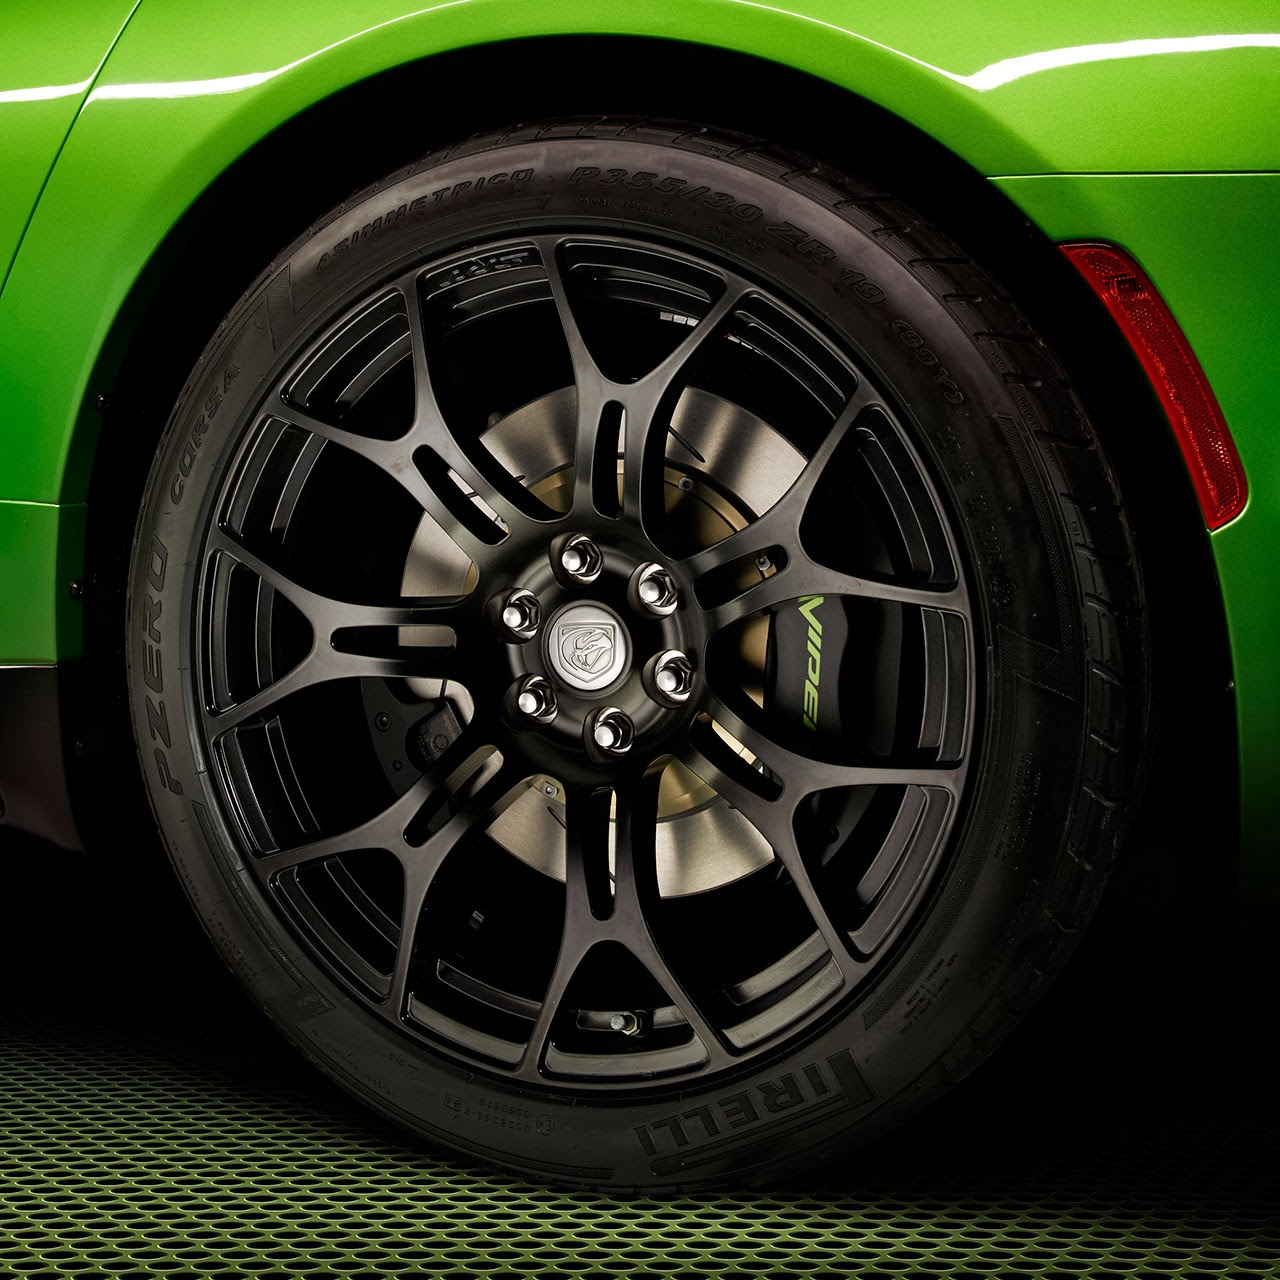 Stryker Green  2014 SRT Viper tire